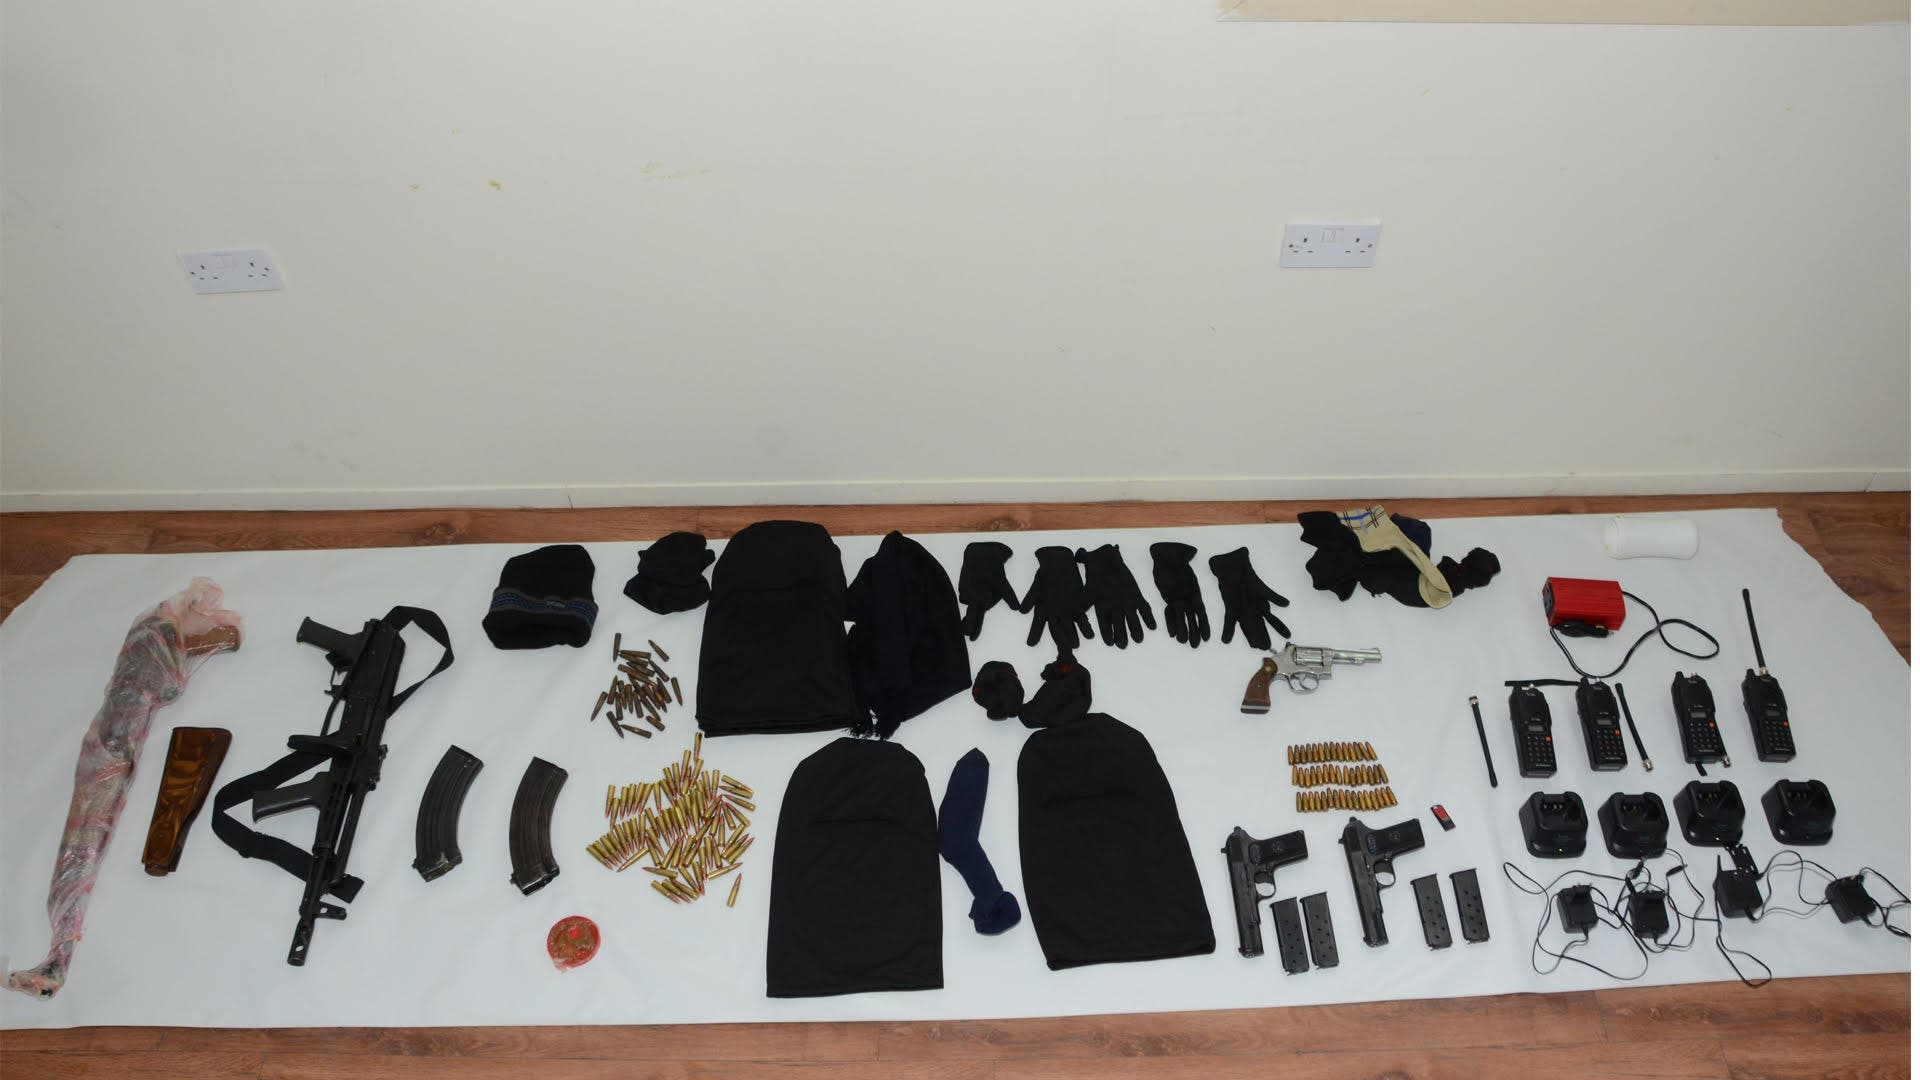 Items found on the vessel included a Kalashnikov assault rifle which was used to attack the coastguard vessels, a GPS system and satellite phone, ID cards, money and personal items.